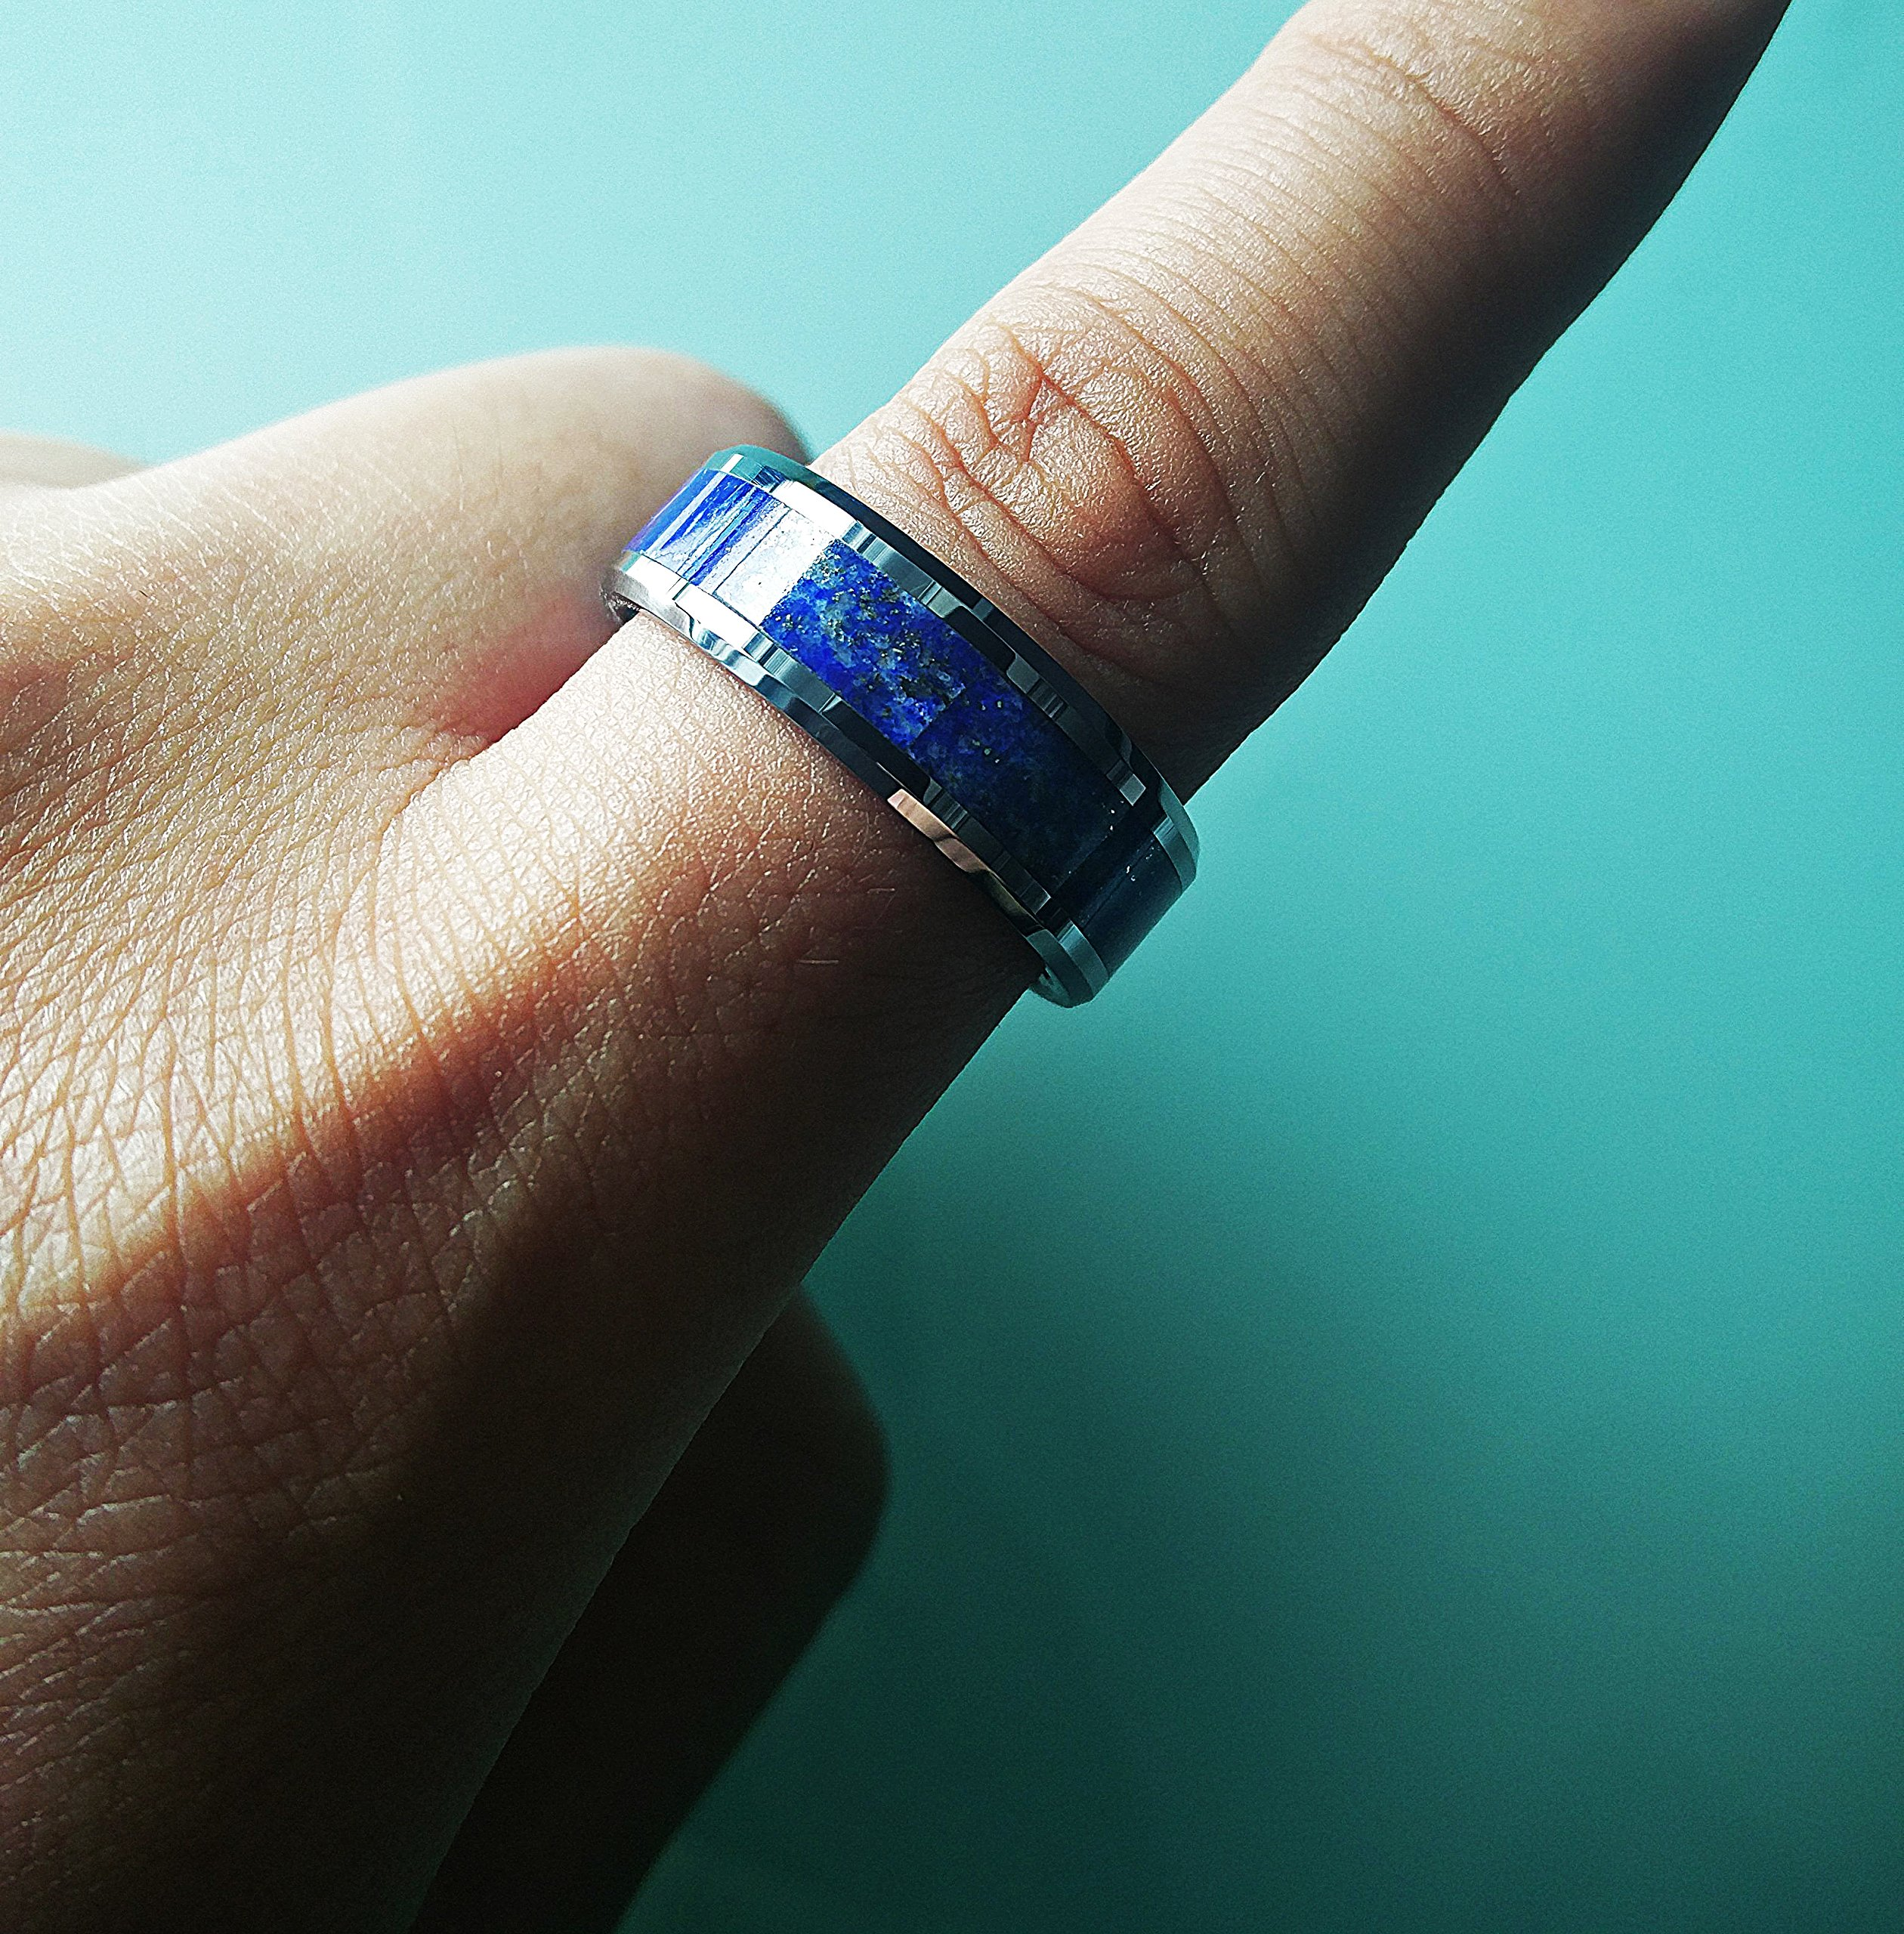 Blue Lapis Lazuli Stone Inlay Tungsten Ring with Polished Beveled Edges - 8mm Available - Lifetime Size Exchanges